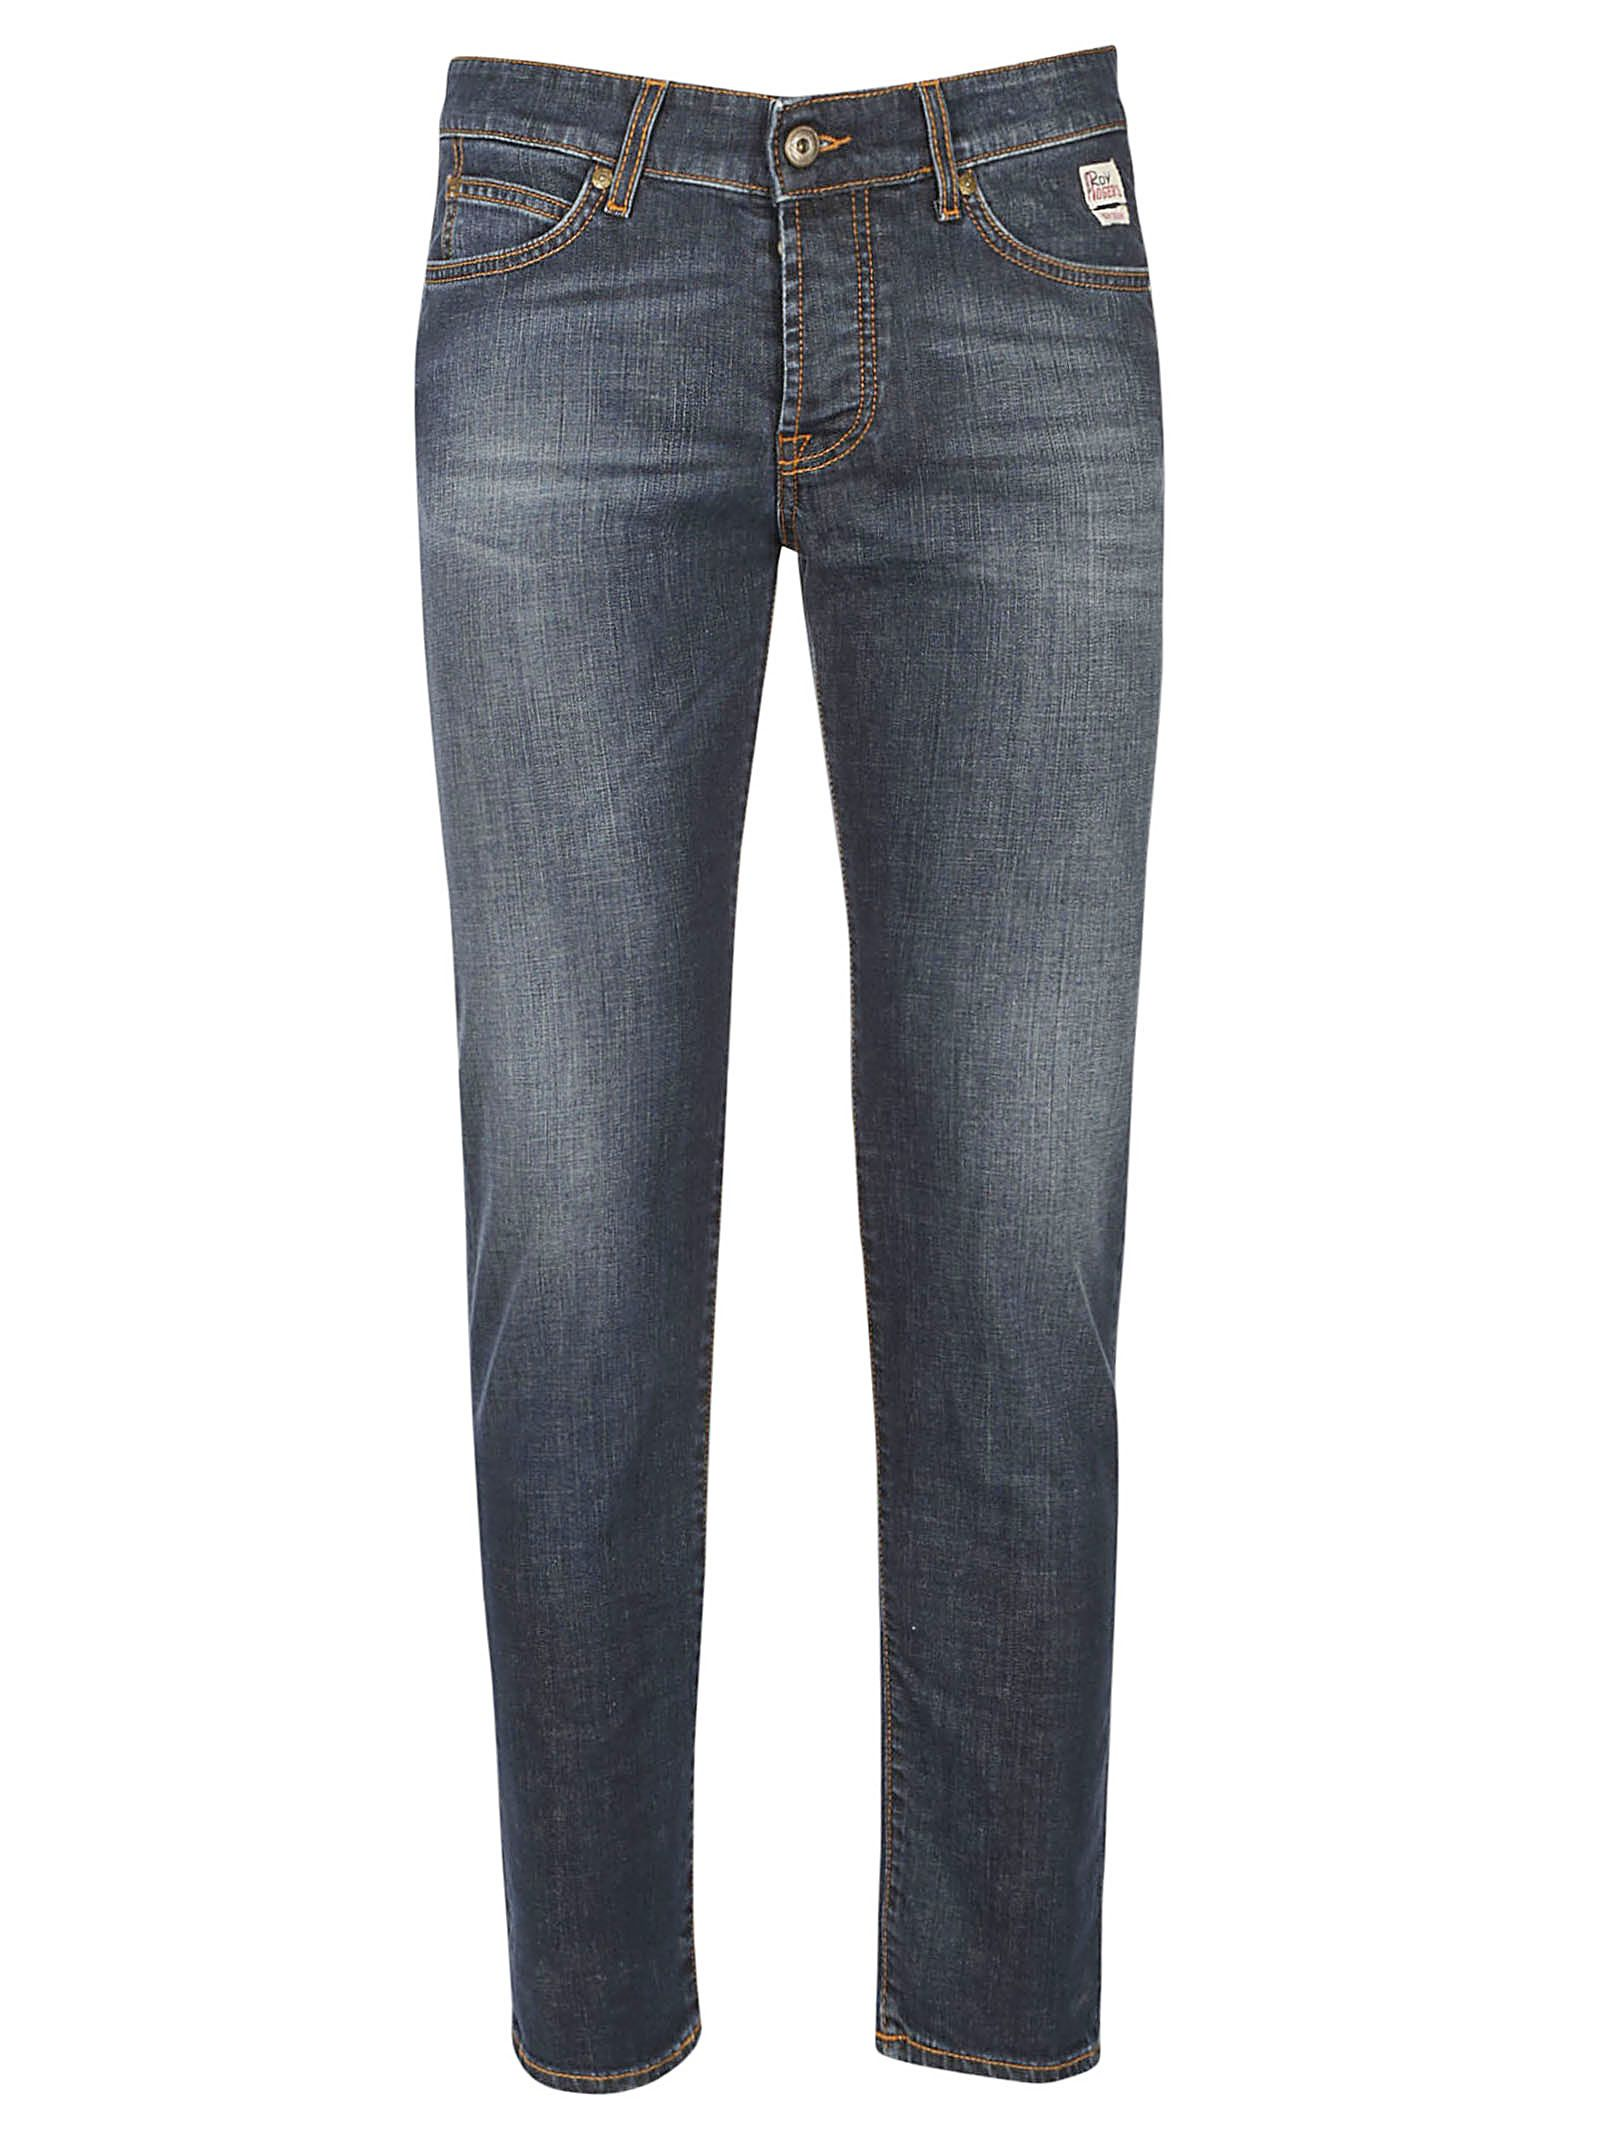 ROY ROGERS Superior Jeans in Blue